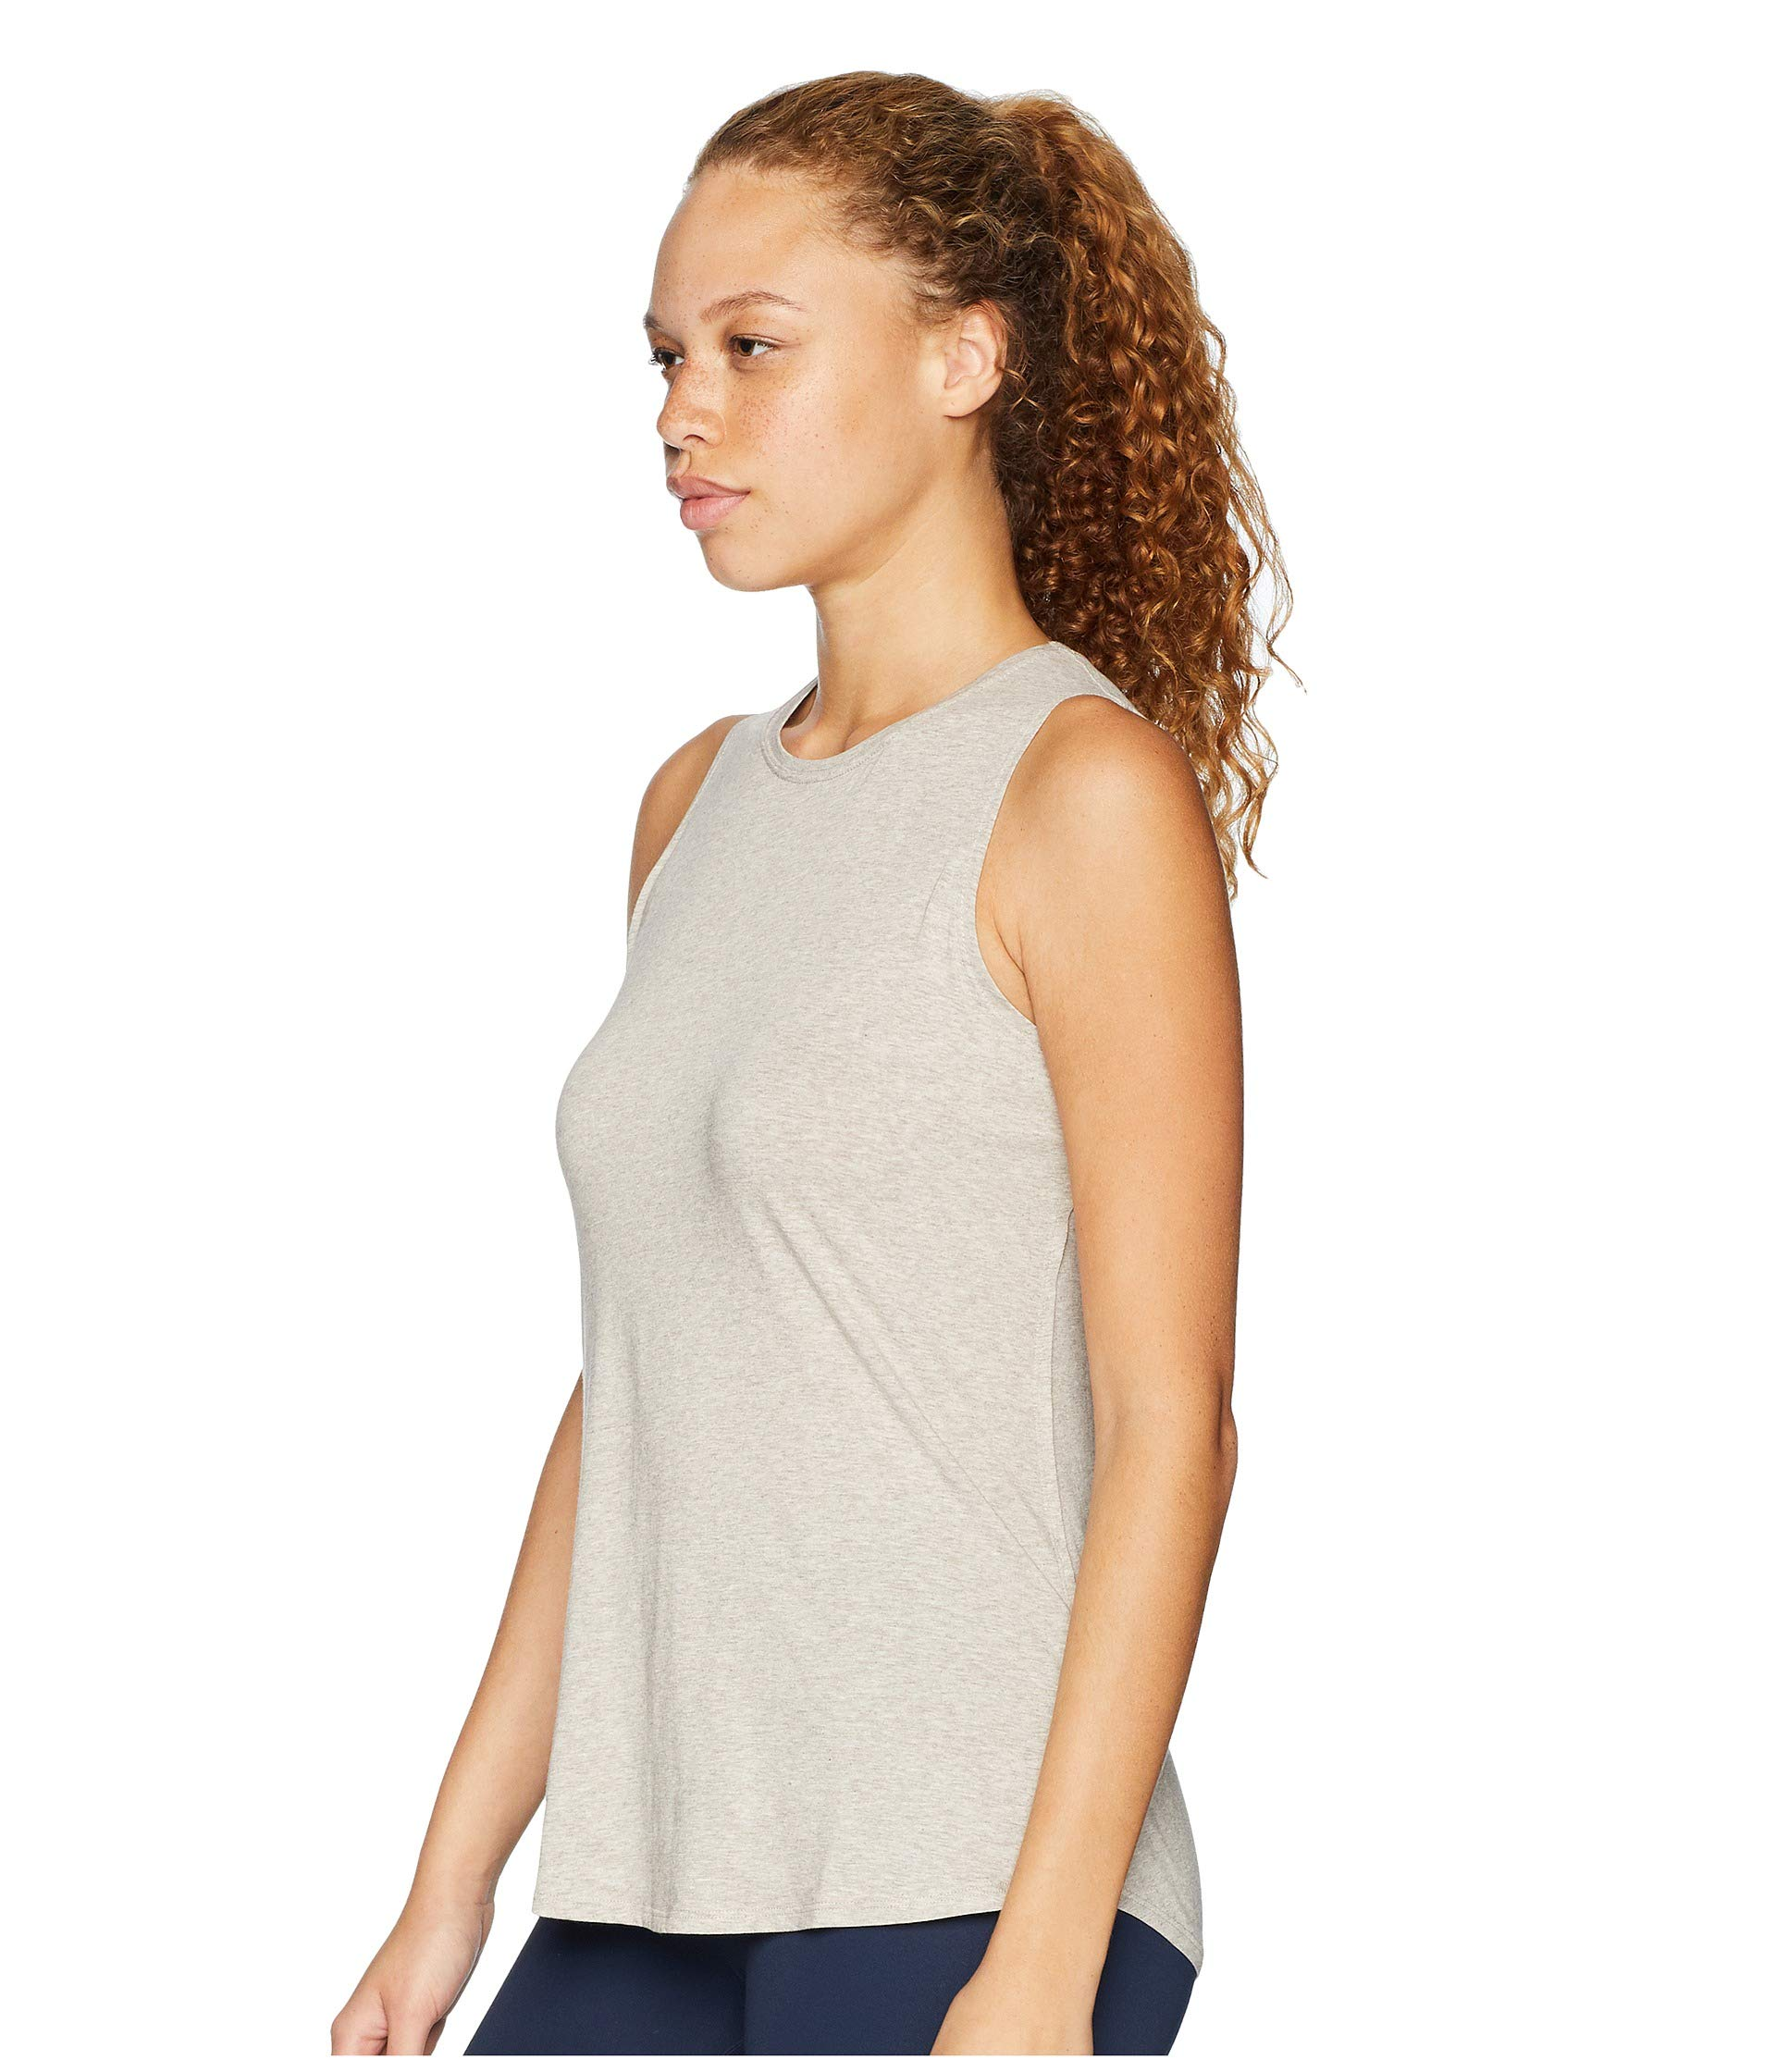 Heather Crater Top Performance Tasc Tank Nola IXqwPxxg0